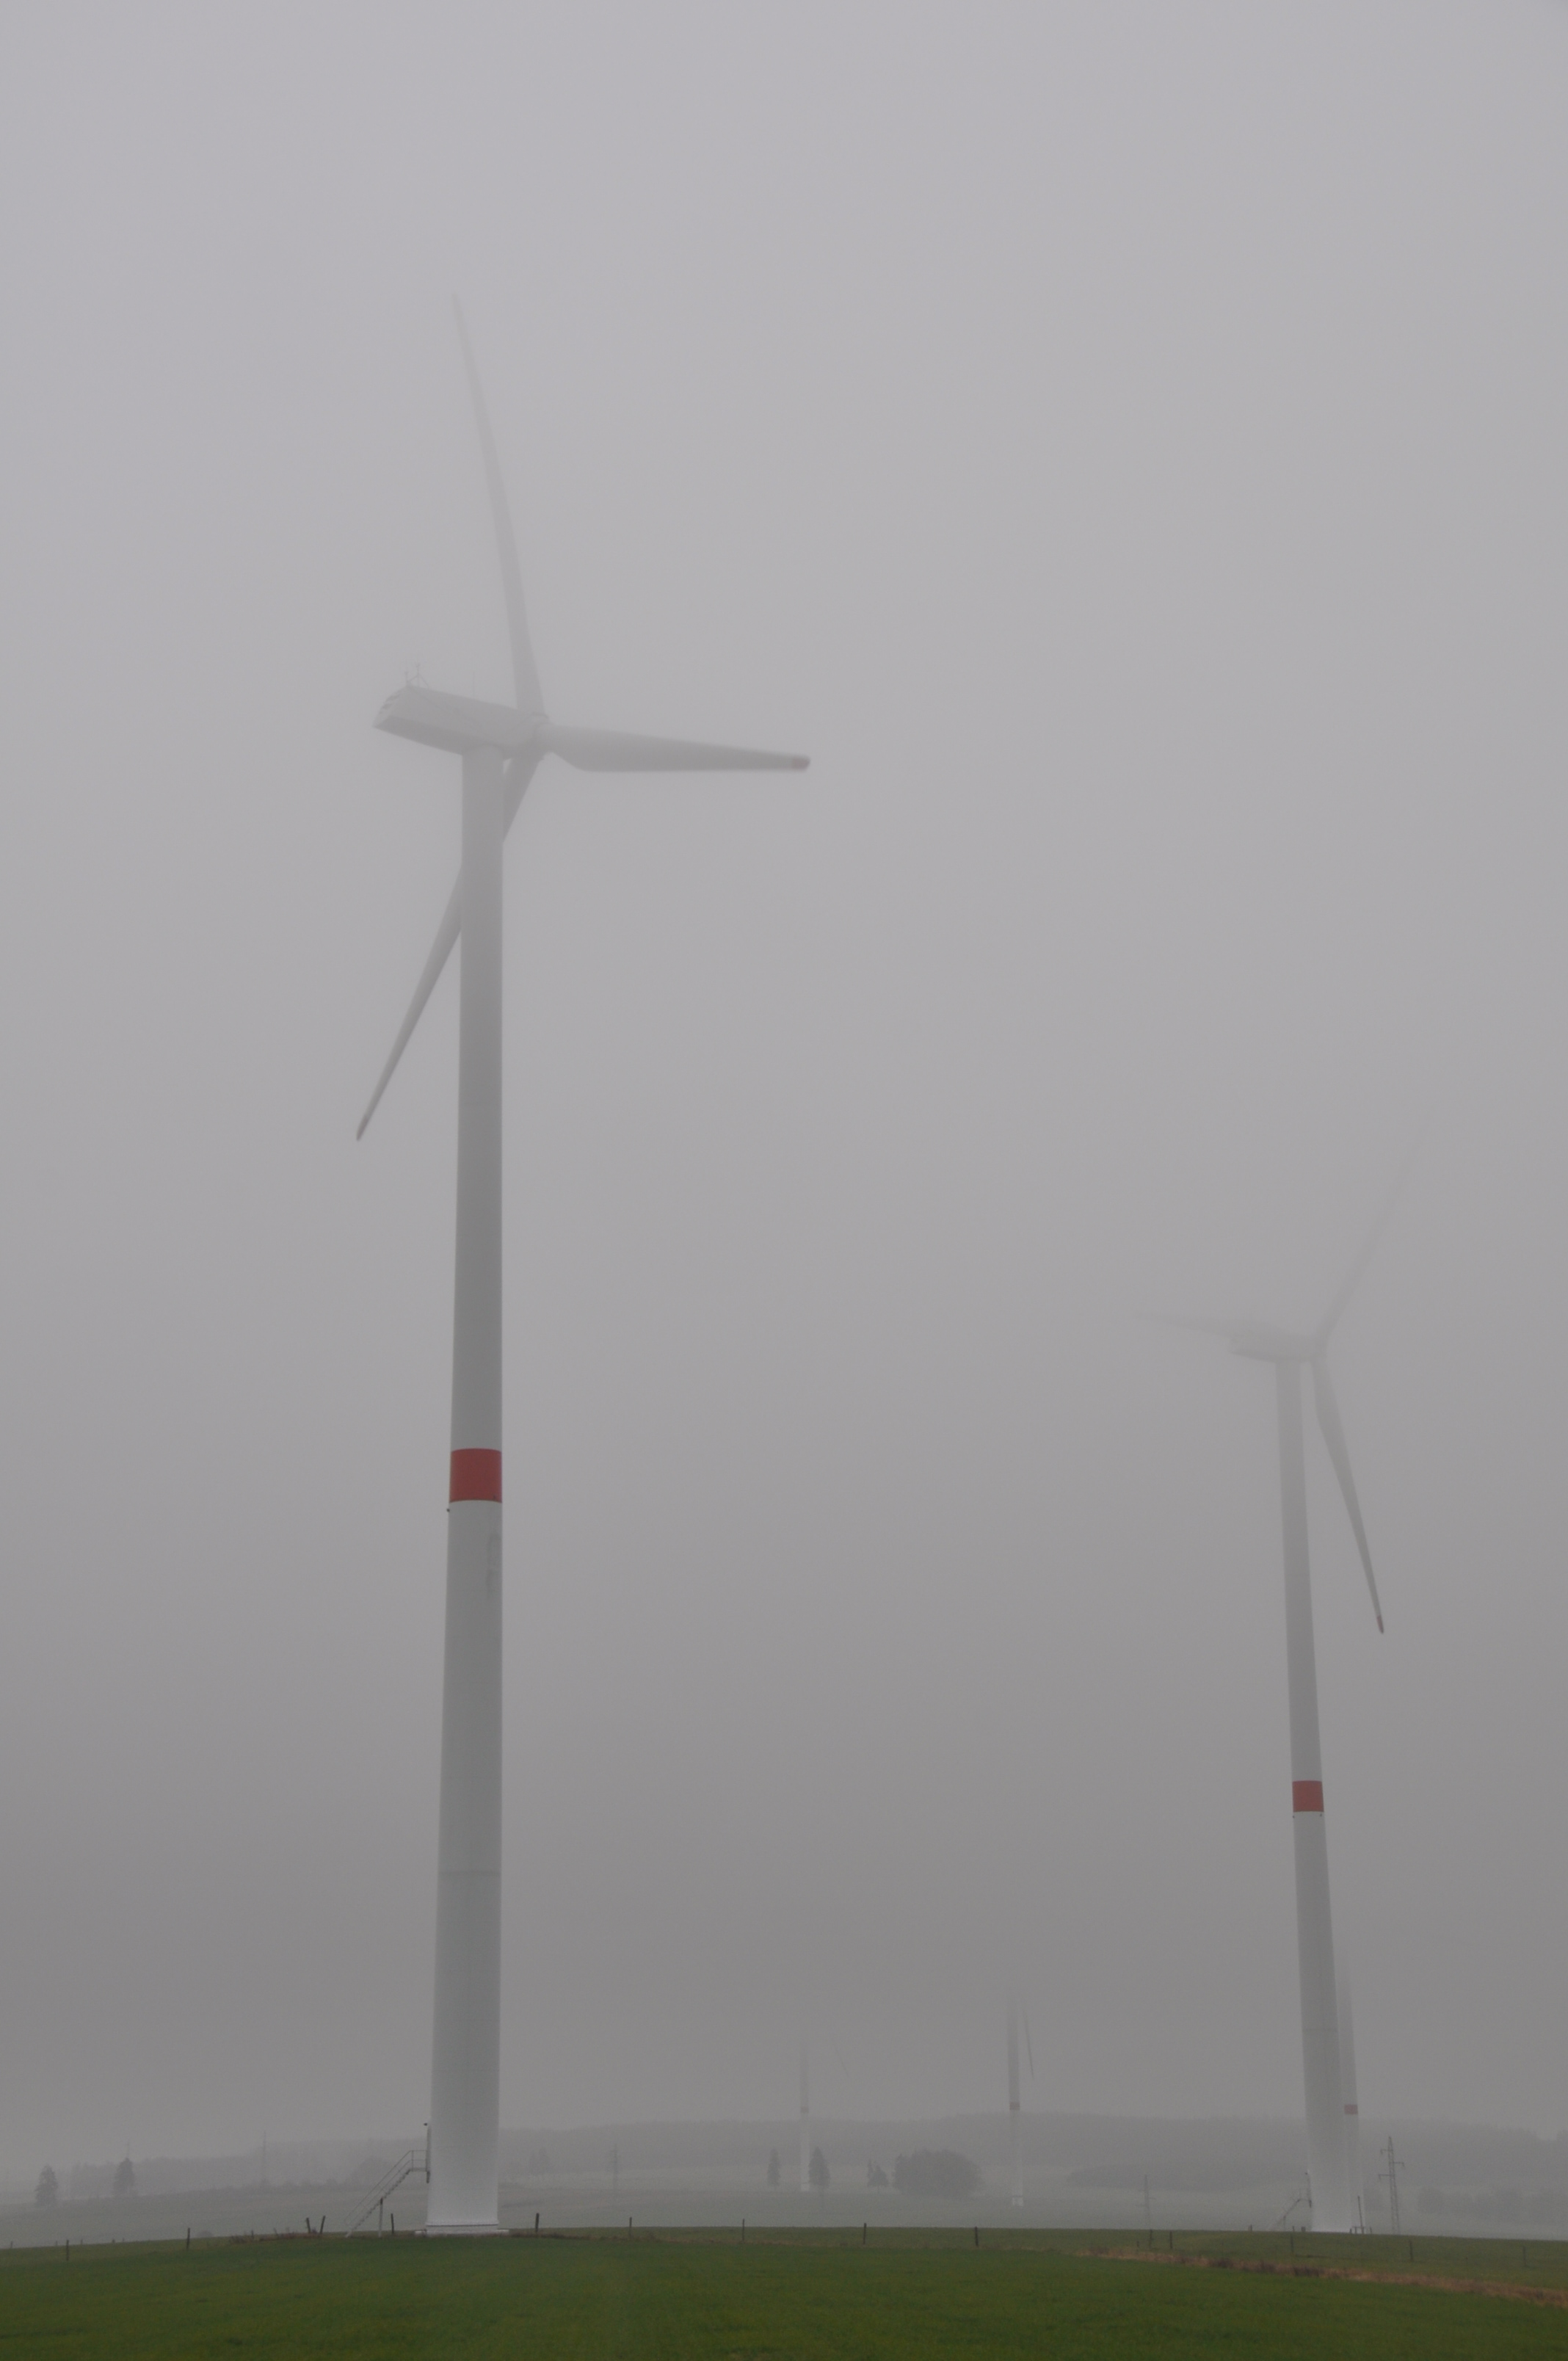 Maintenance Contracts for Wind Turbines & Performance Optimization